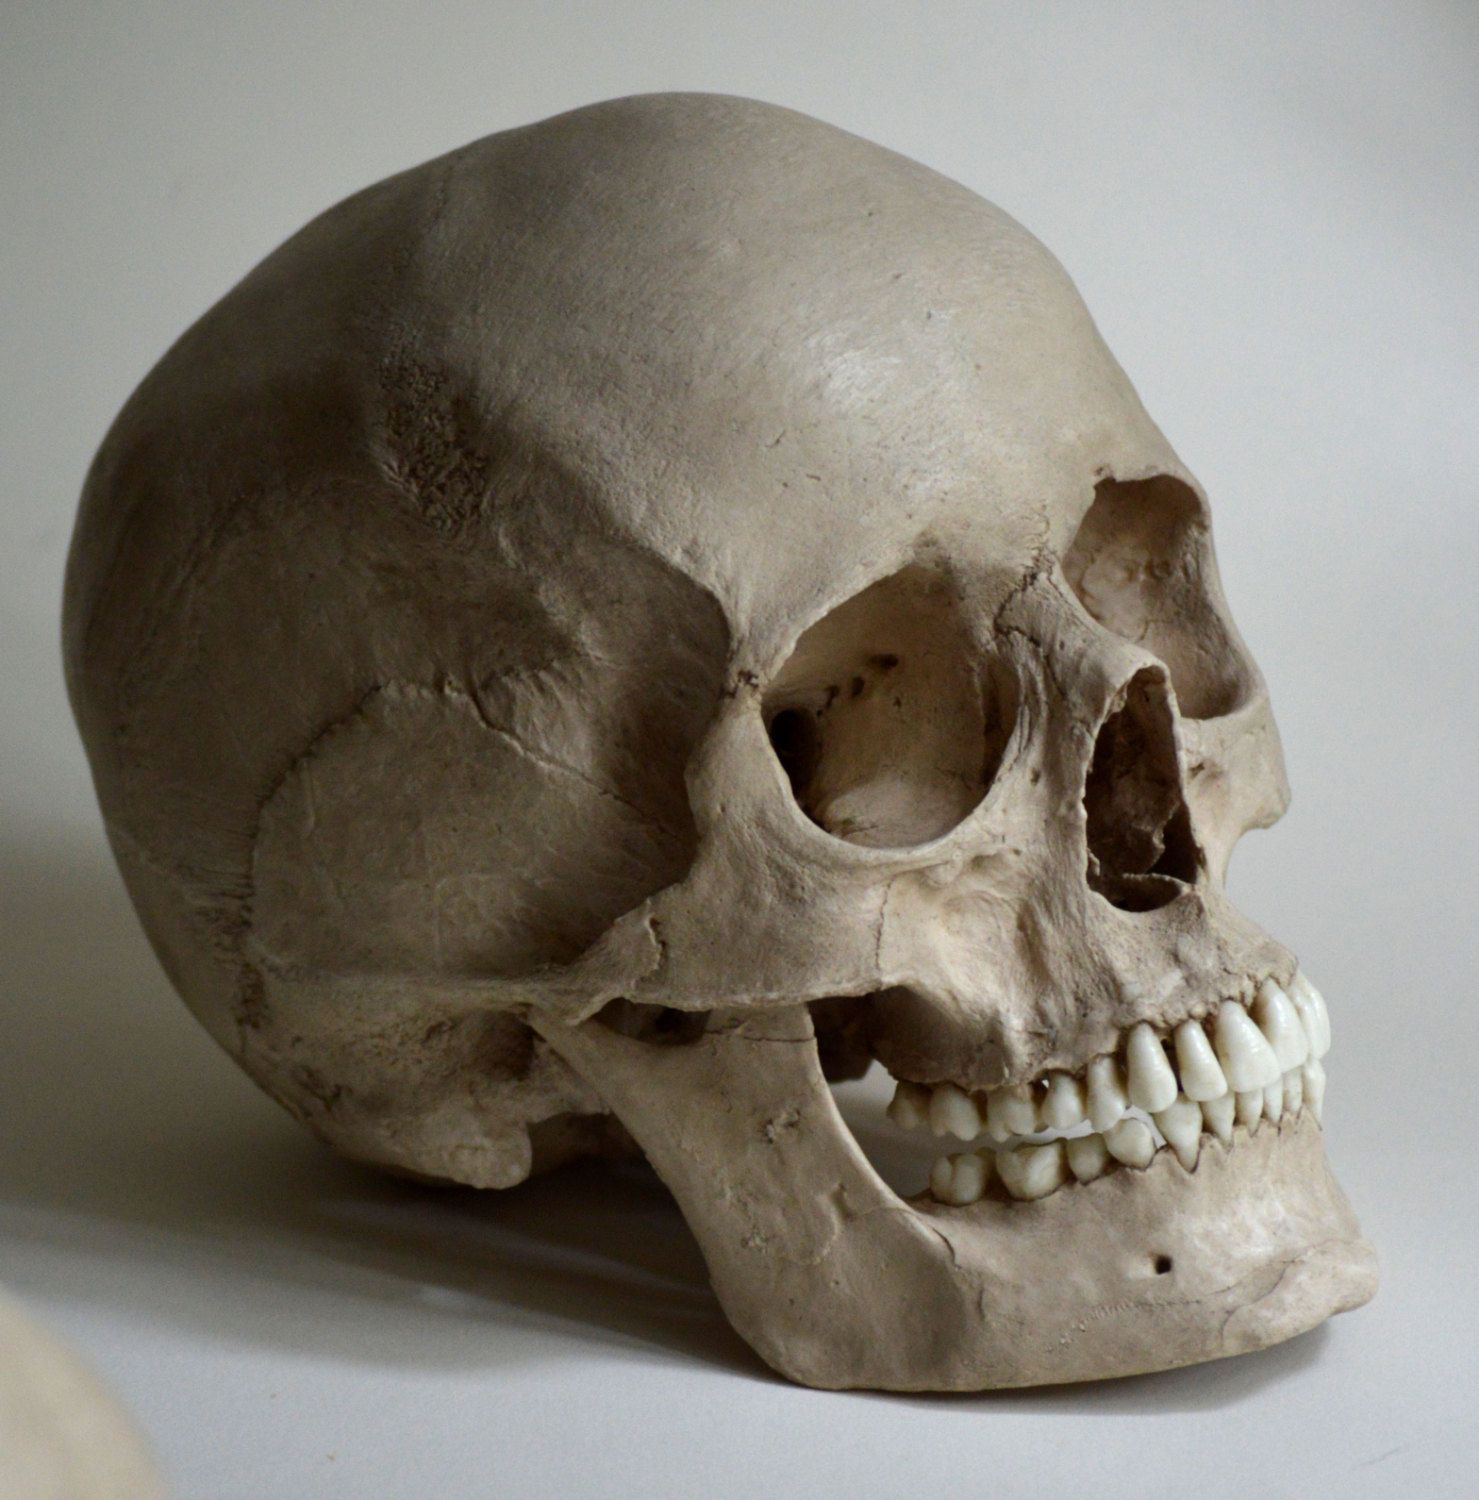 female human skull replica by artskulls on etsy | artworkstuff, Skeleton